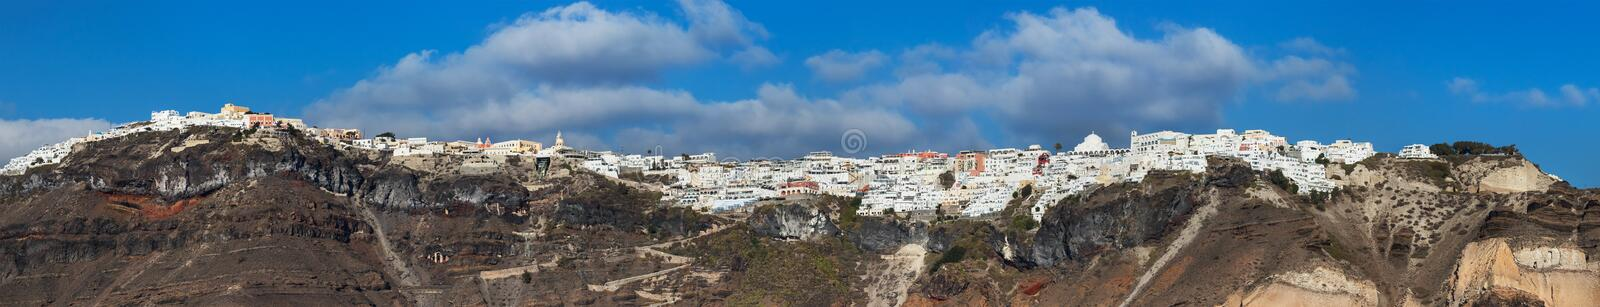 Panoramic view of the city of Thira in Santorini, Geece royalty free stock photography